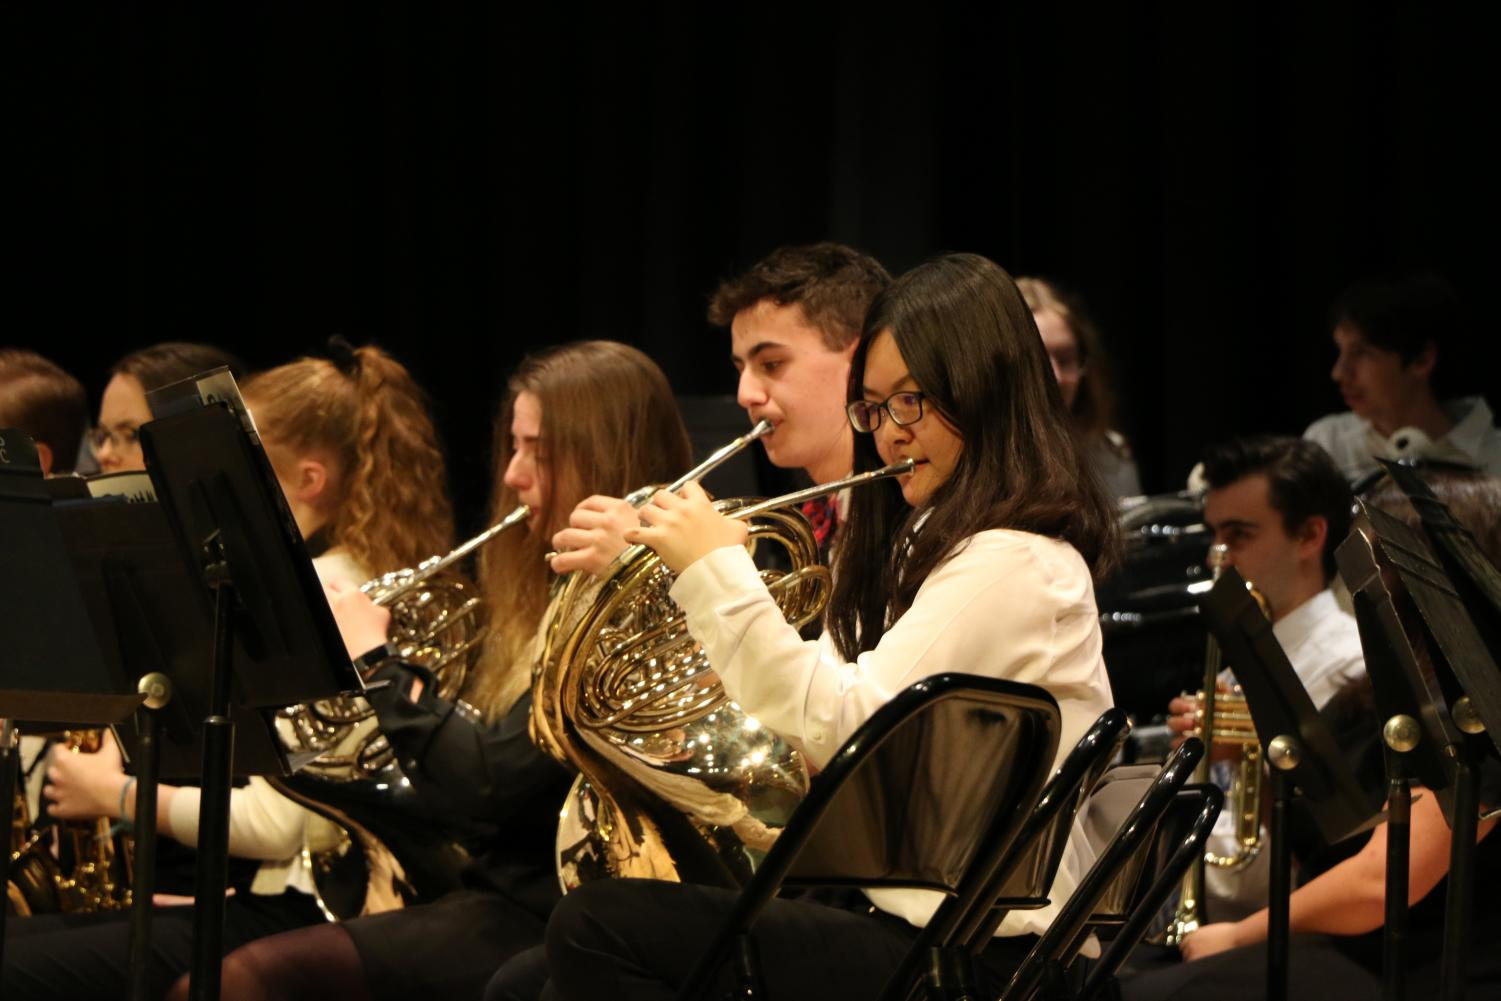 Heejung Koo, sophomore French horn player, plays her French horn during the Concert band concert. Koo said her favorite part about being in the Concert band is,